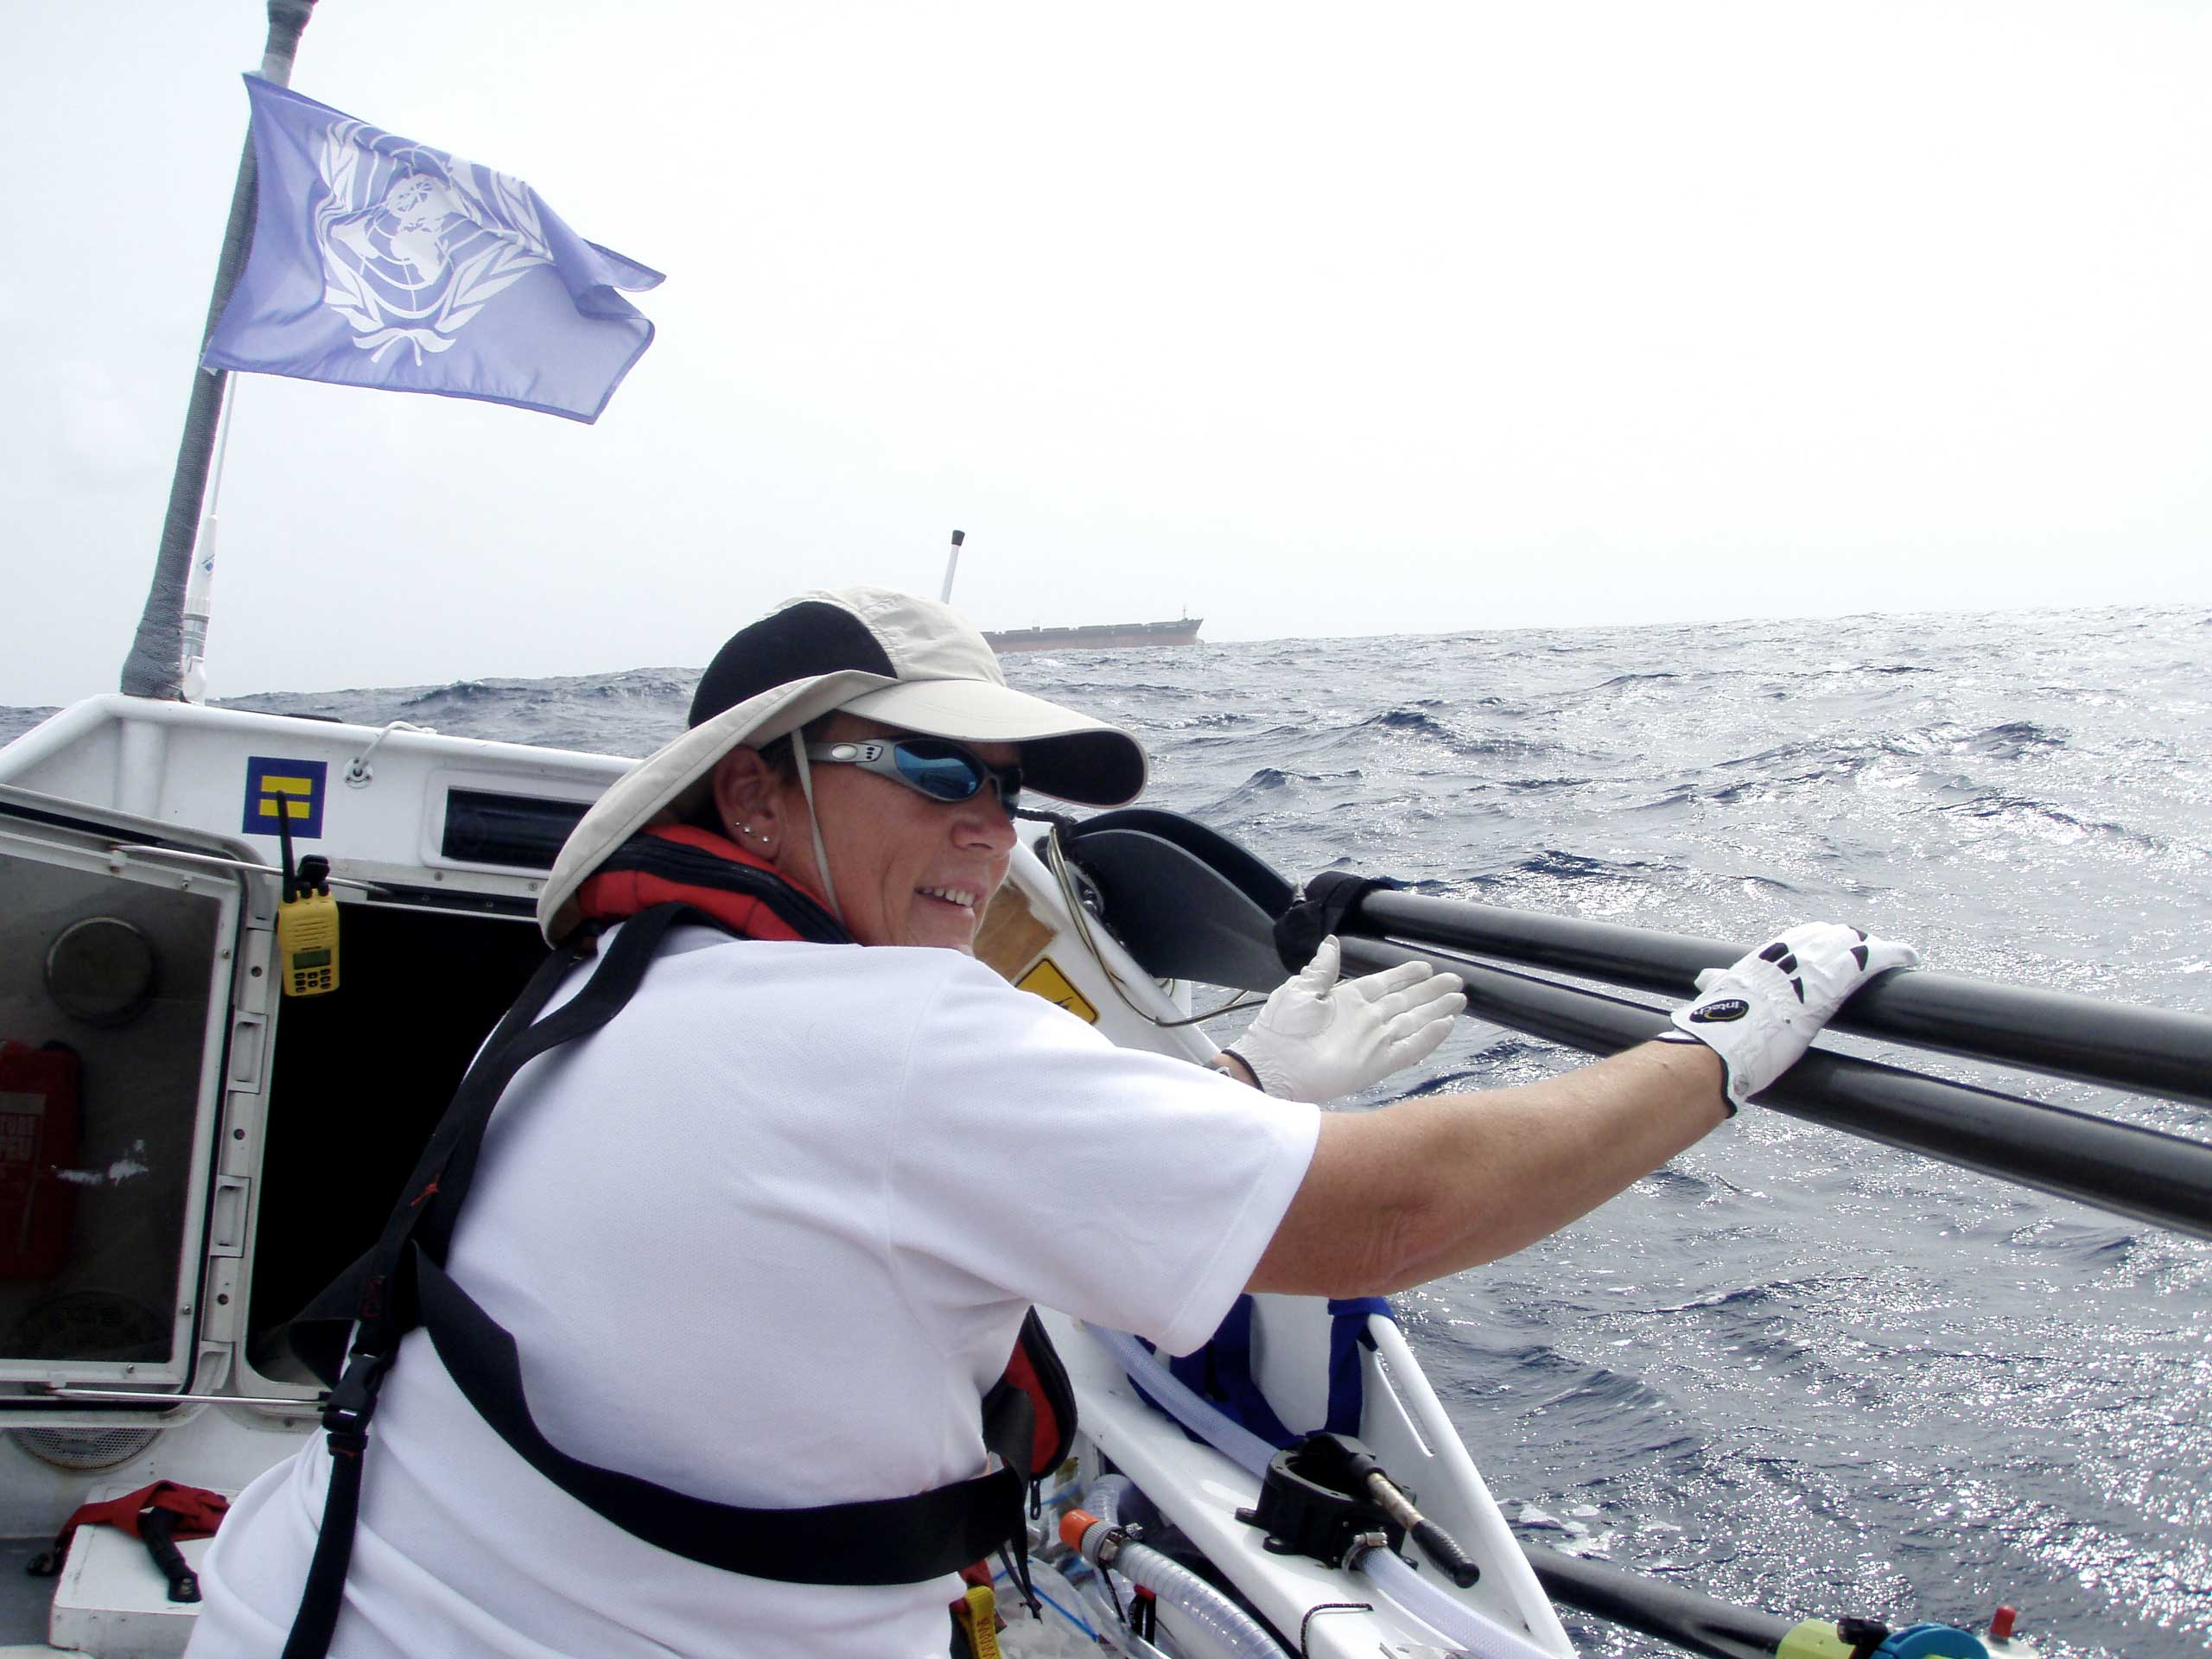 Angela Madsen during her first row across the Atlantic Ocean in 2007.